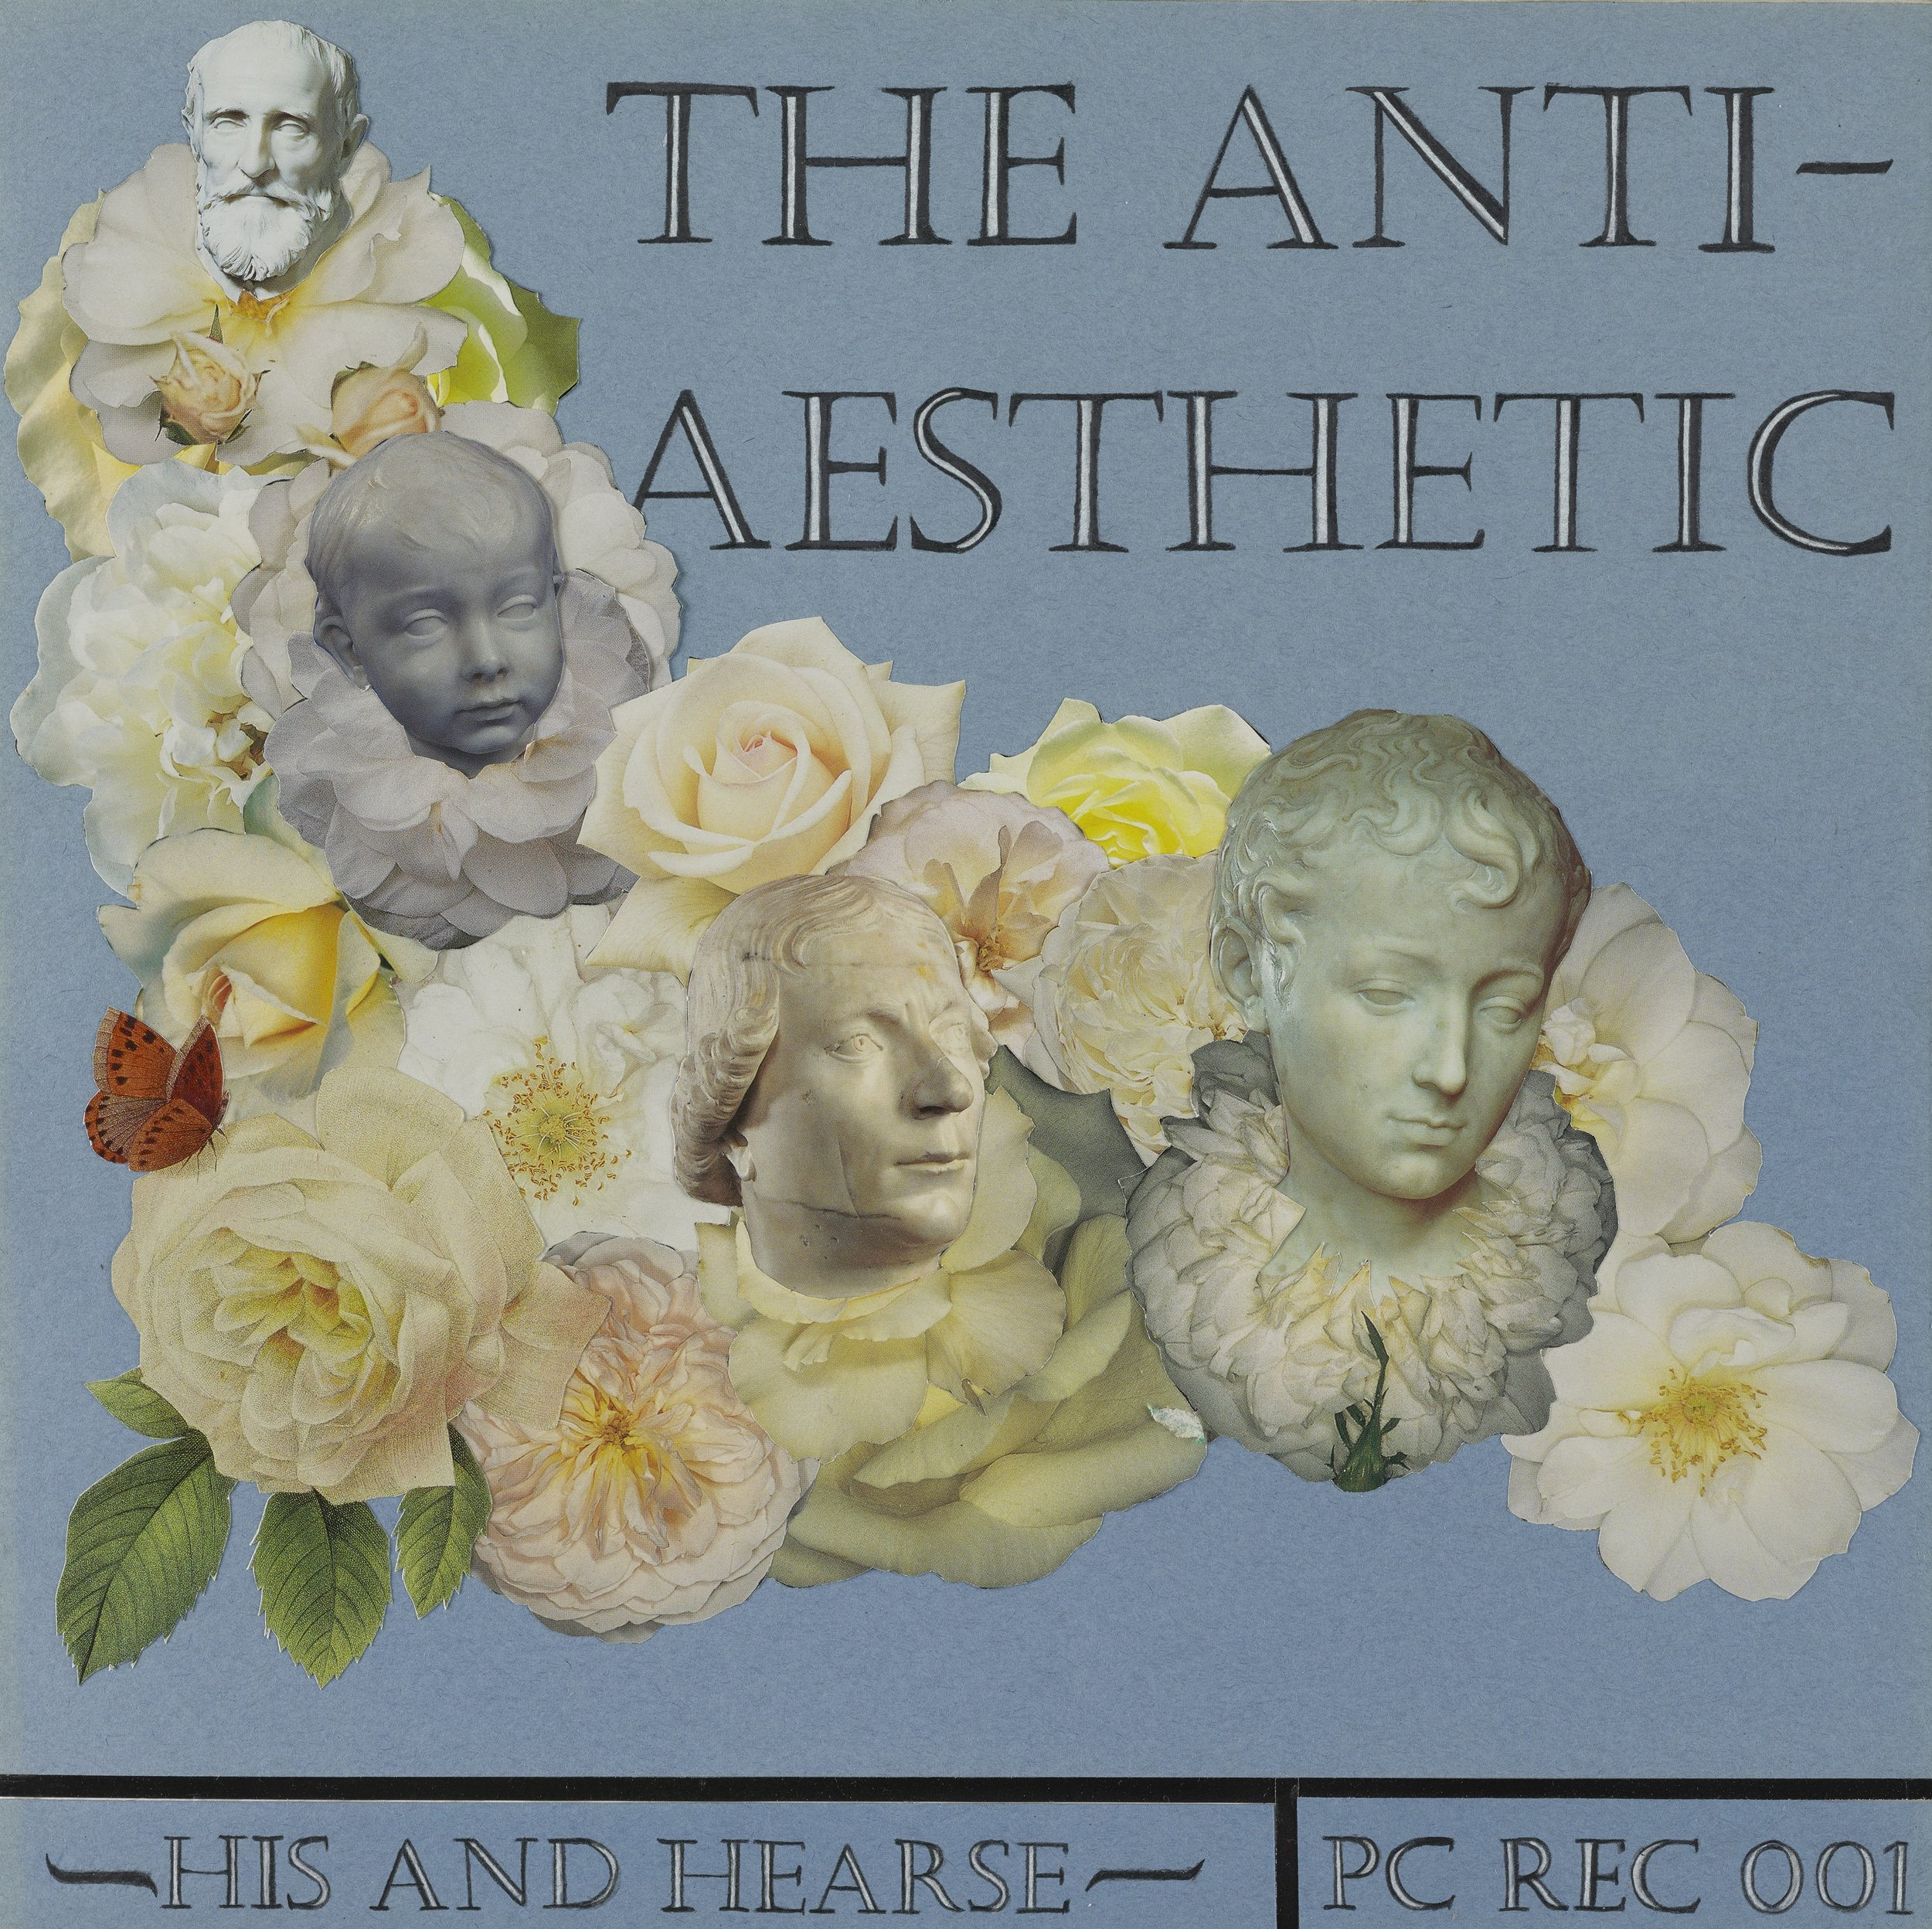 The Anti-Aesthetic, 2015